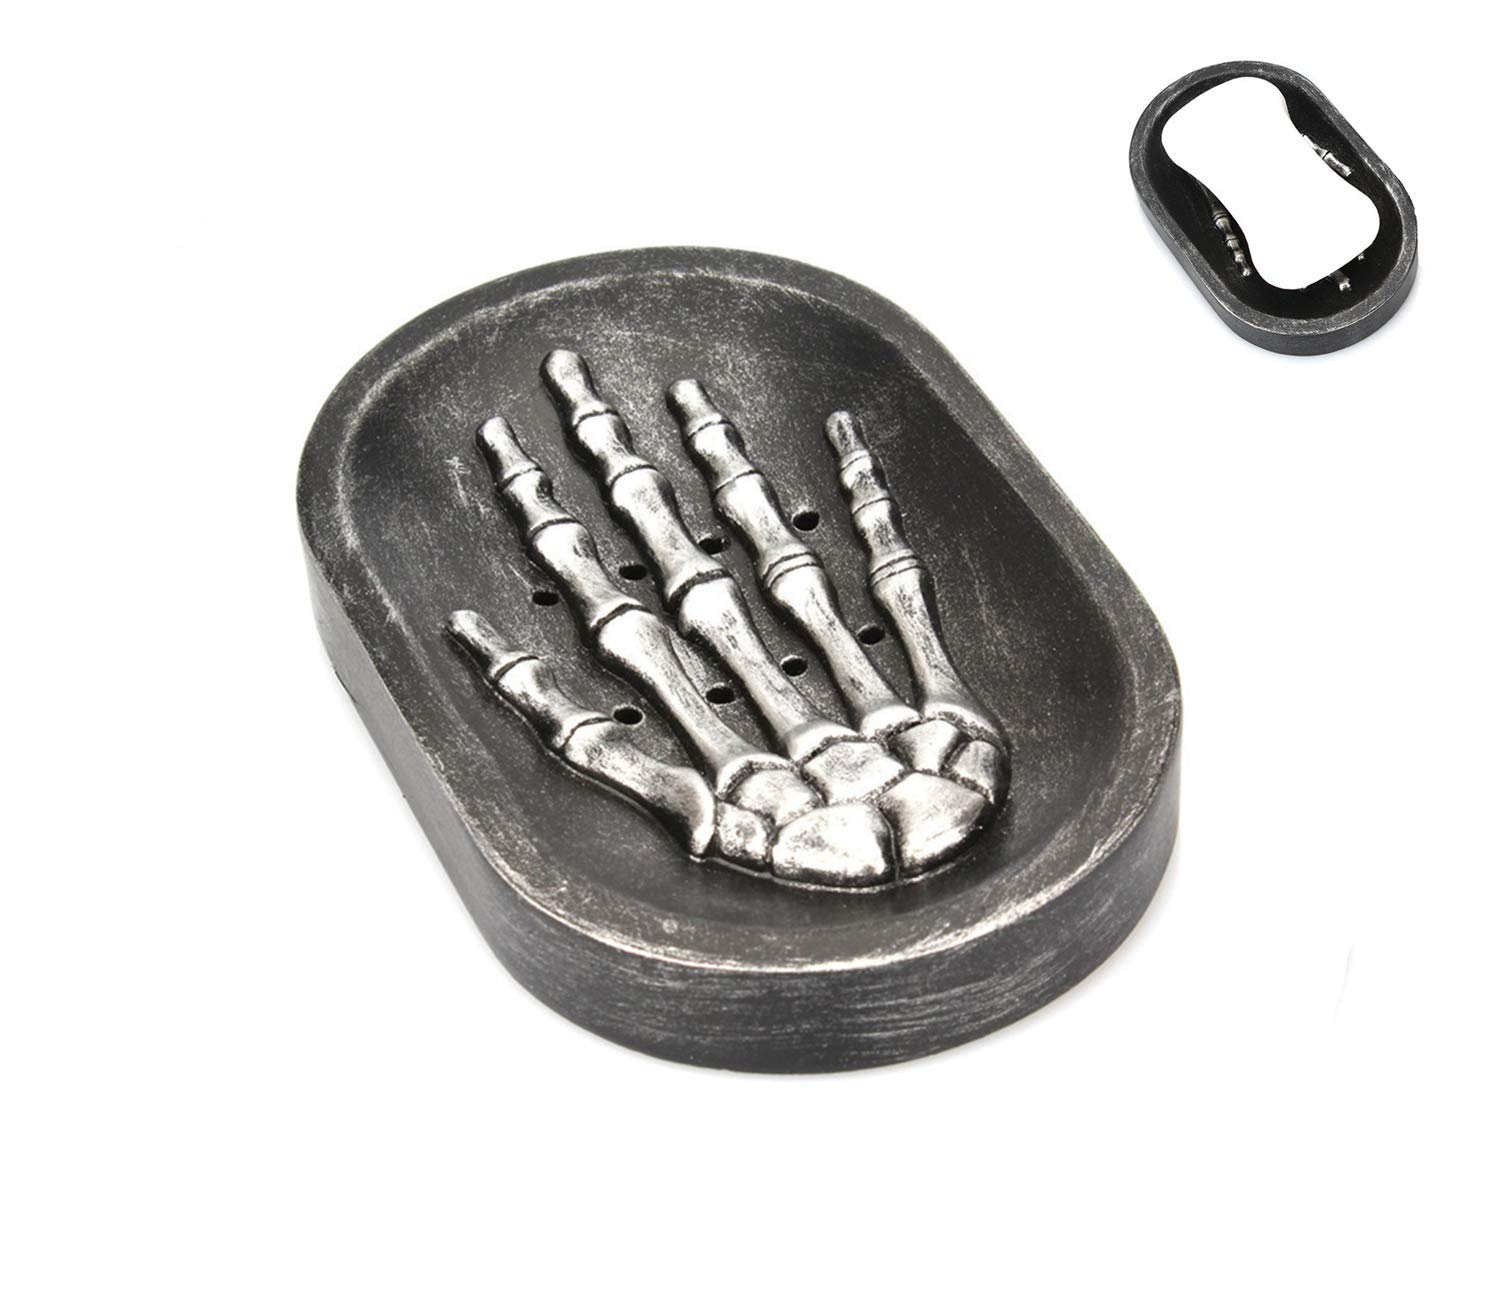 NPL Skeleton Design Soap Dish Holder Dark Style Decor for Kitchen Sink Bathroom Shower Home Hotel Office Halloween Gravely Scary Spooky Fantasy Thematic